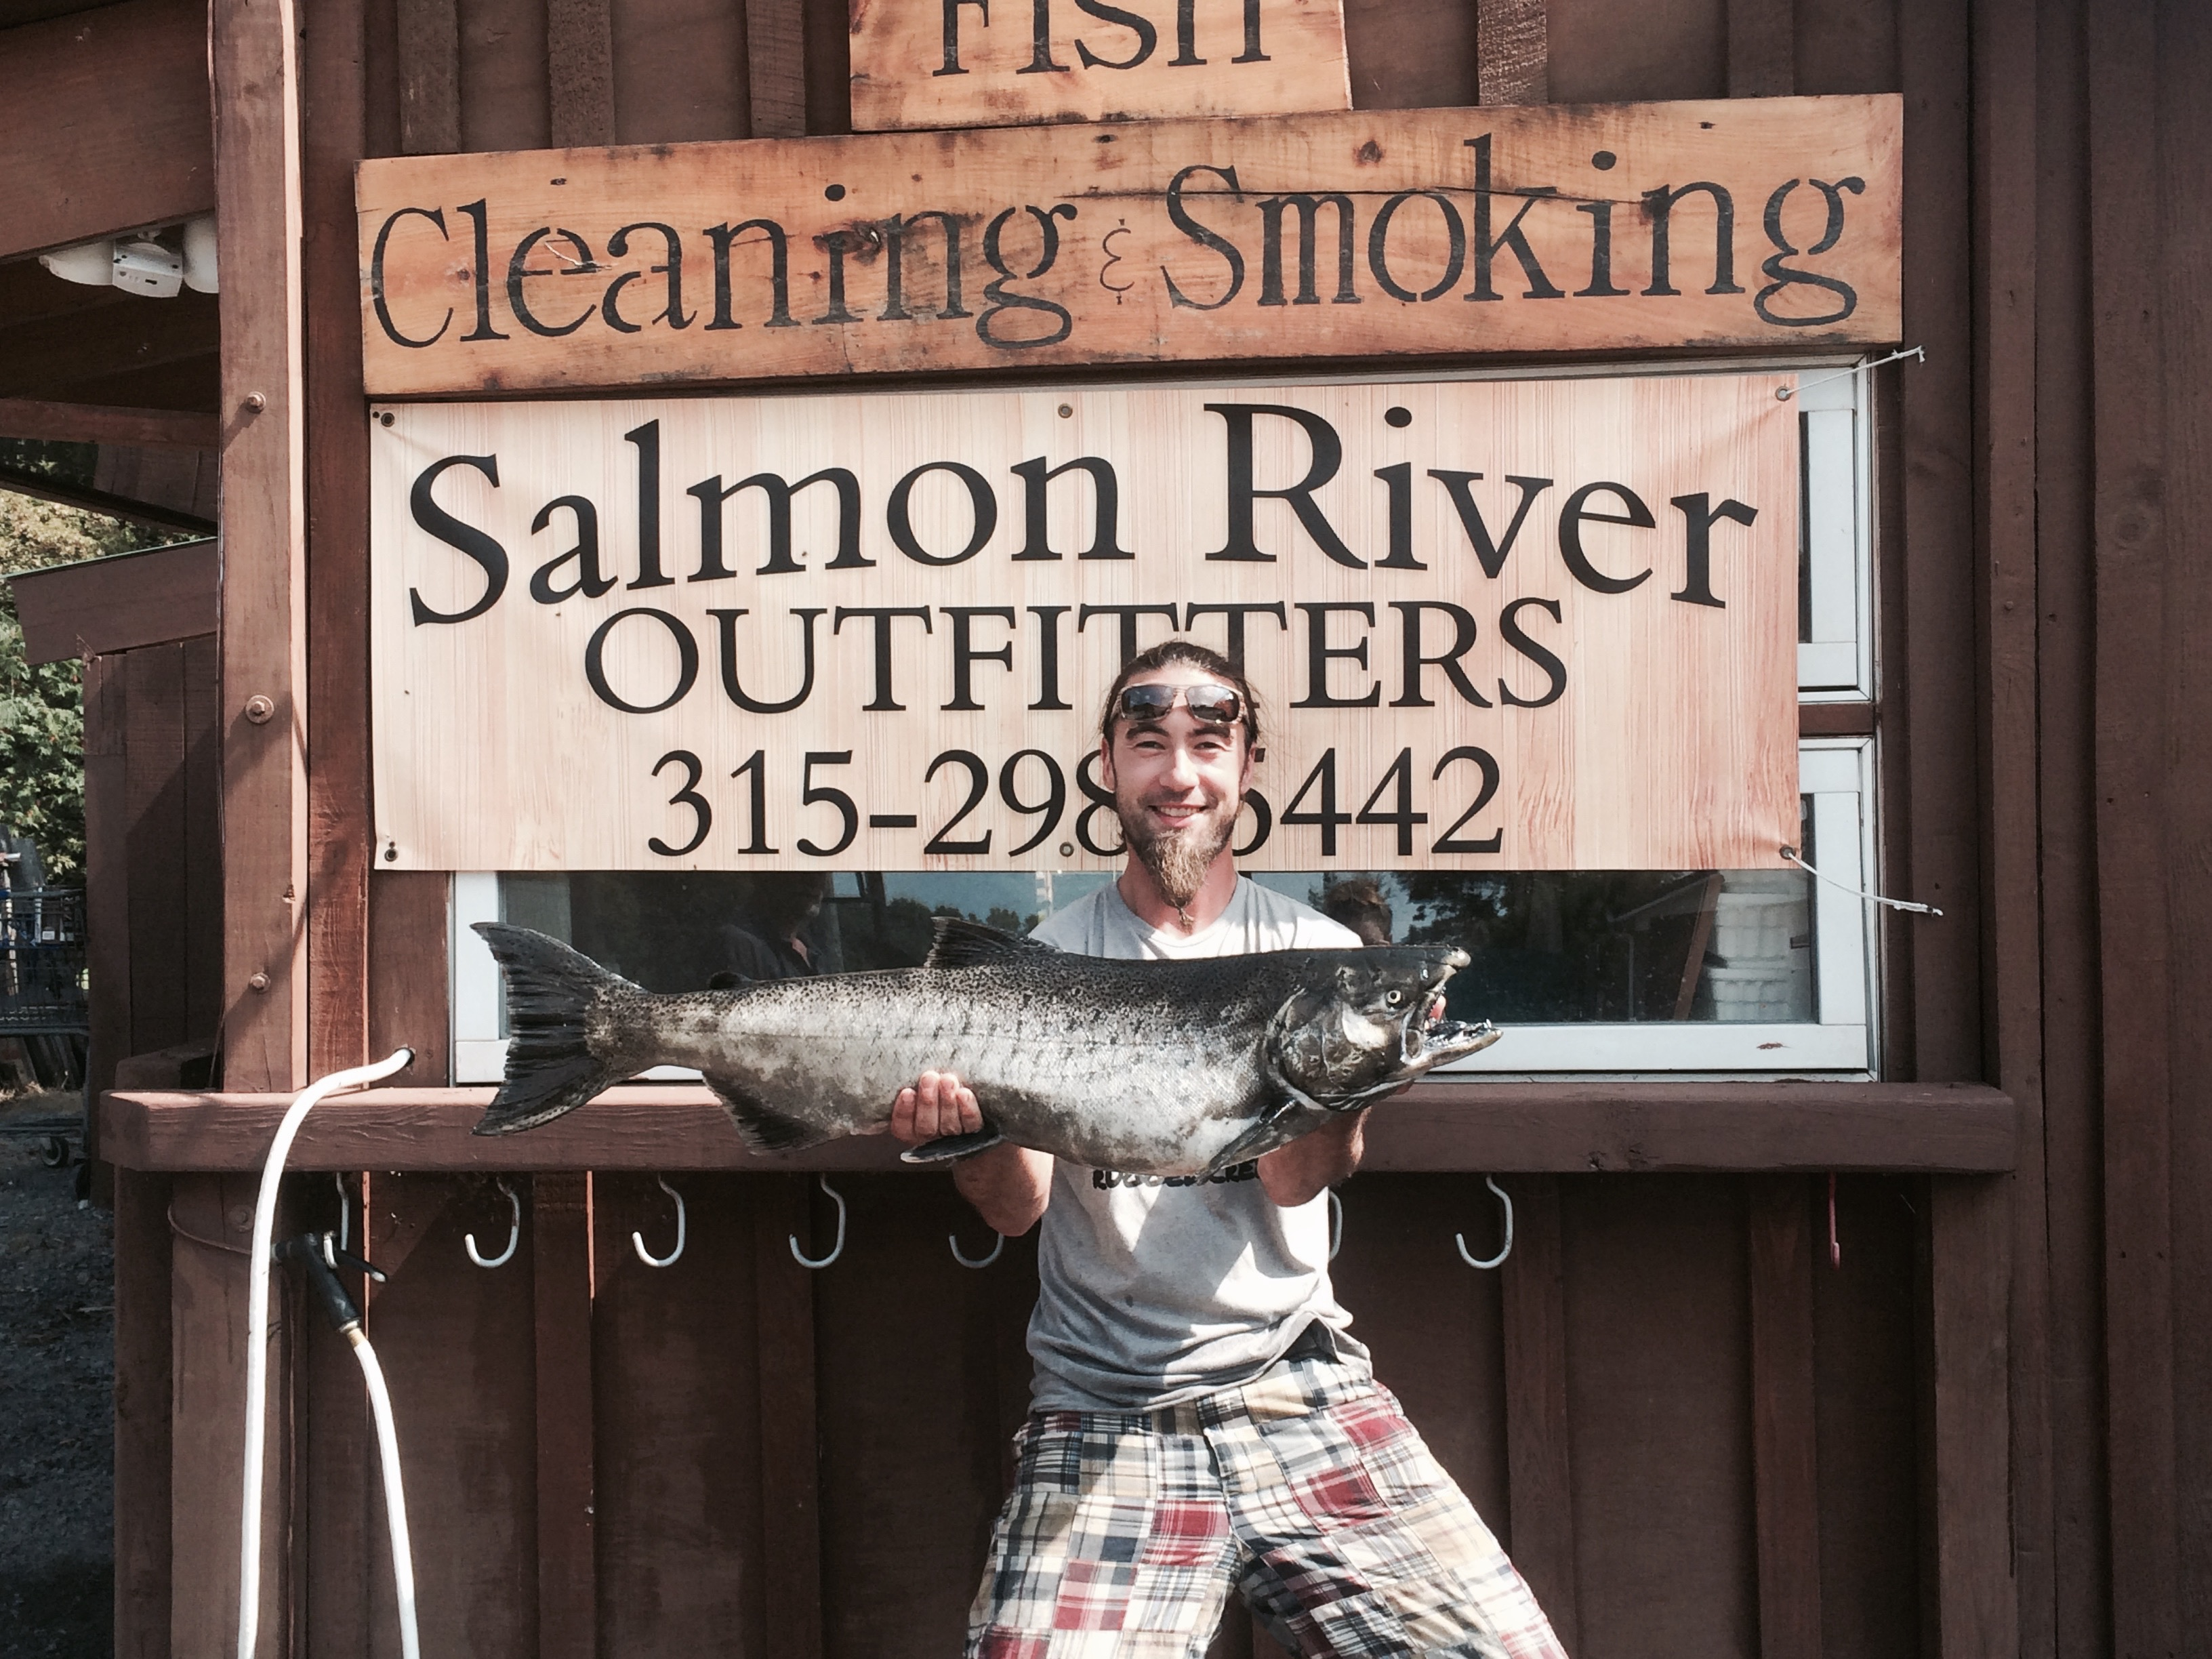 Salmon River Outfitters